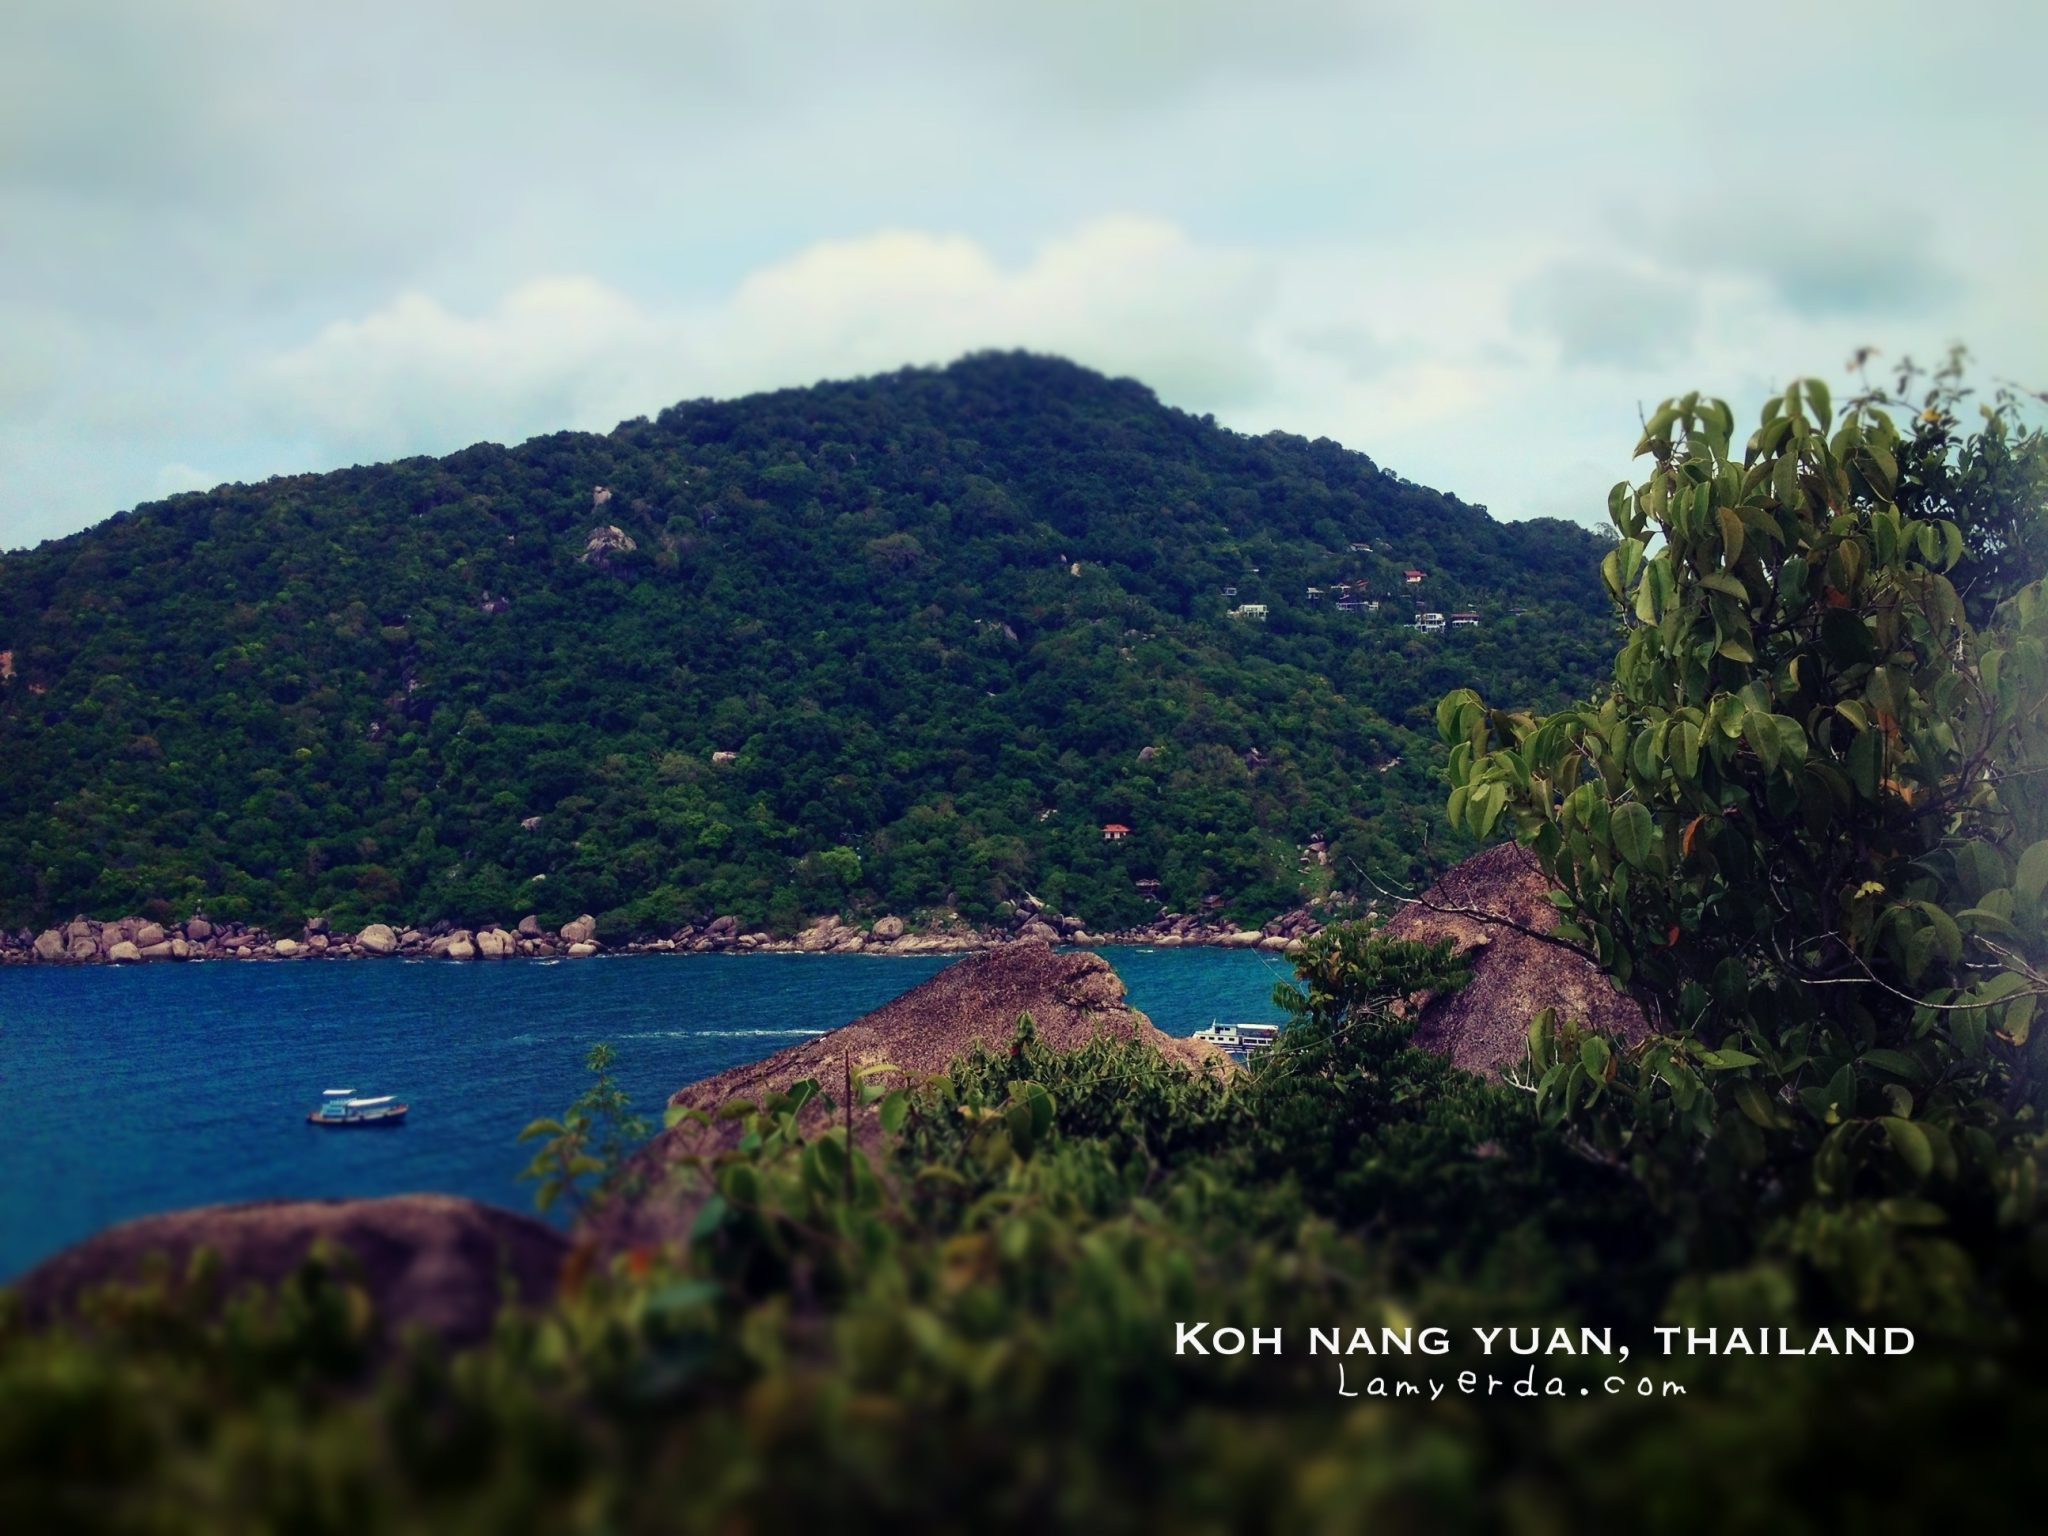 View from the other side of Koh Nang Yuan